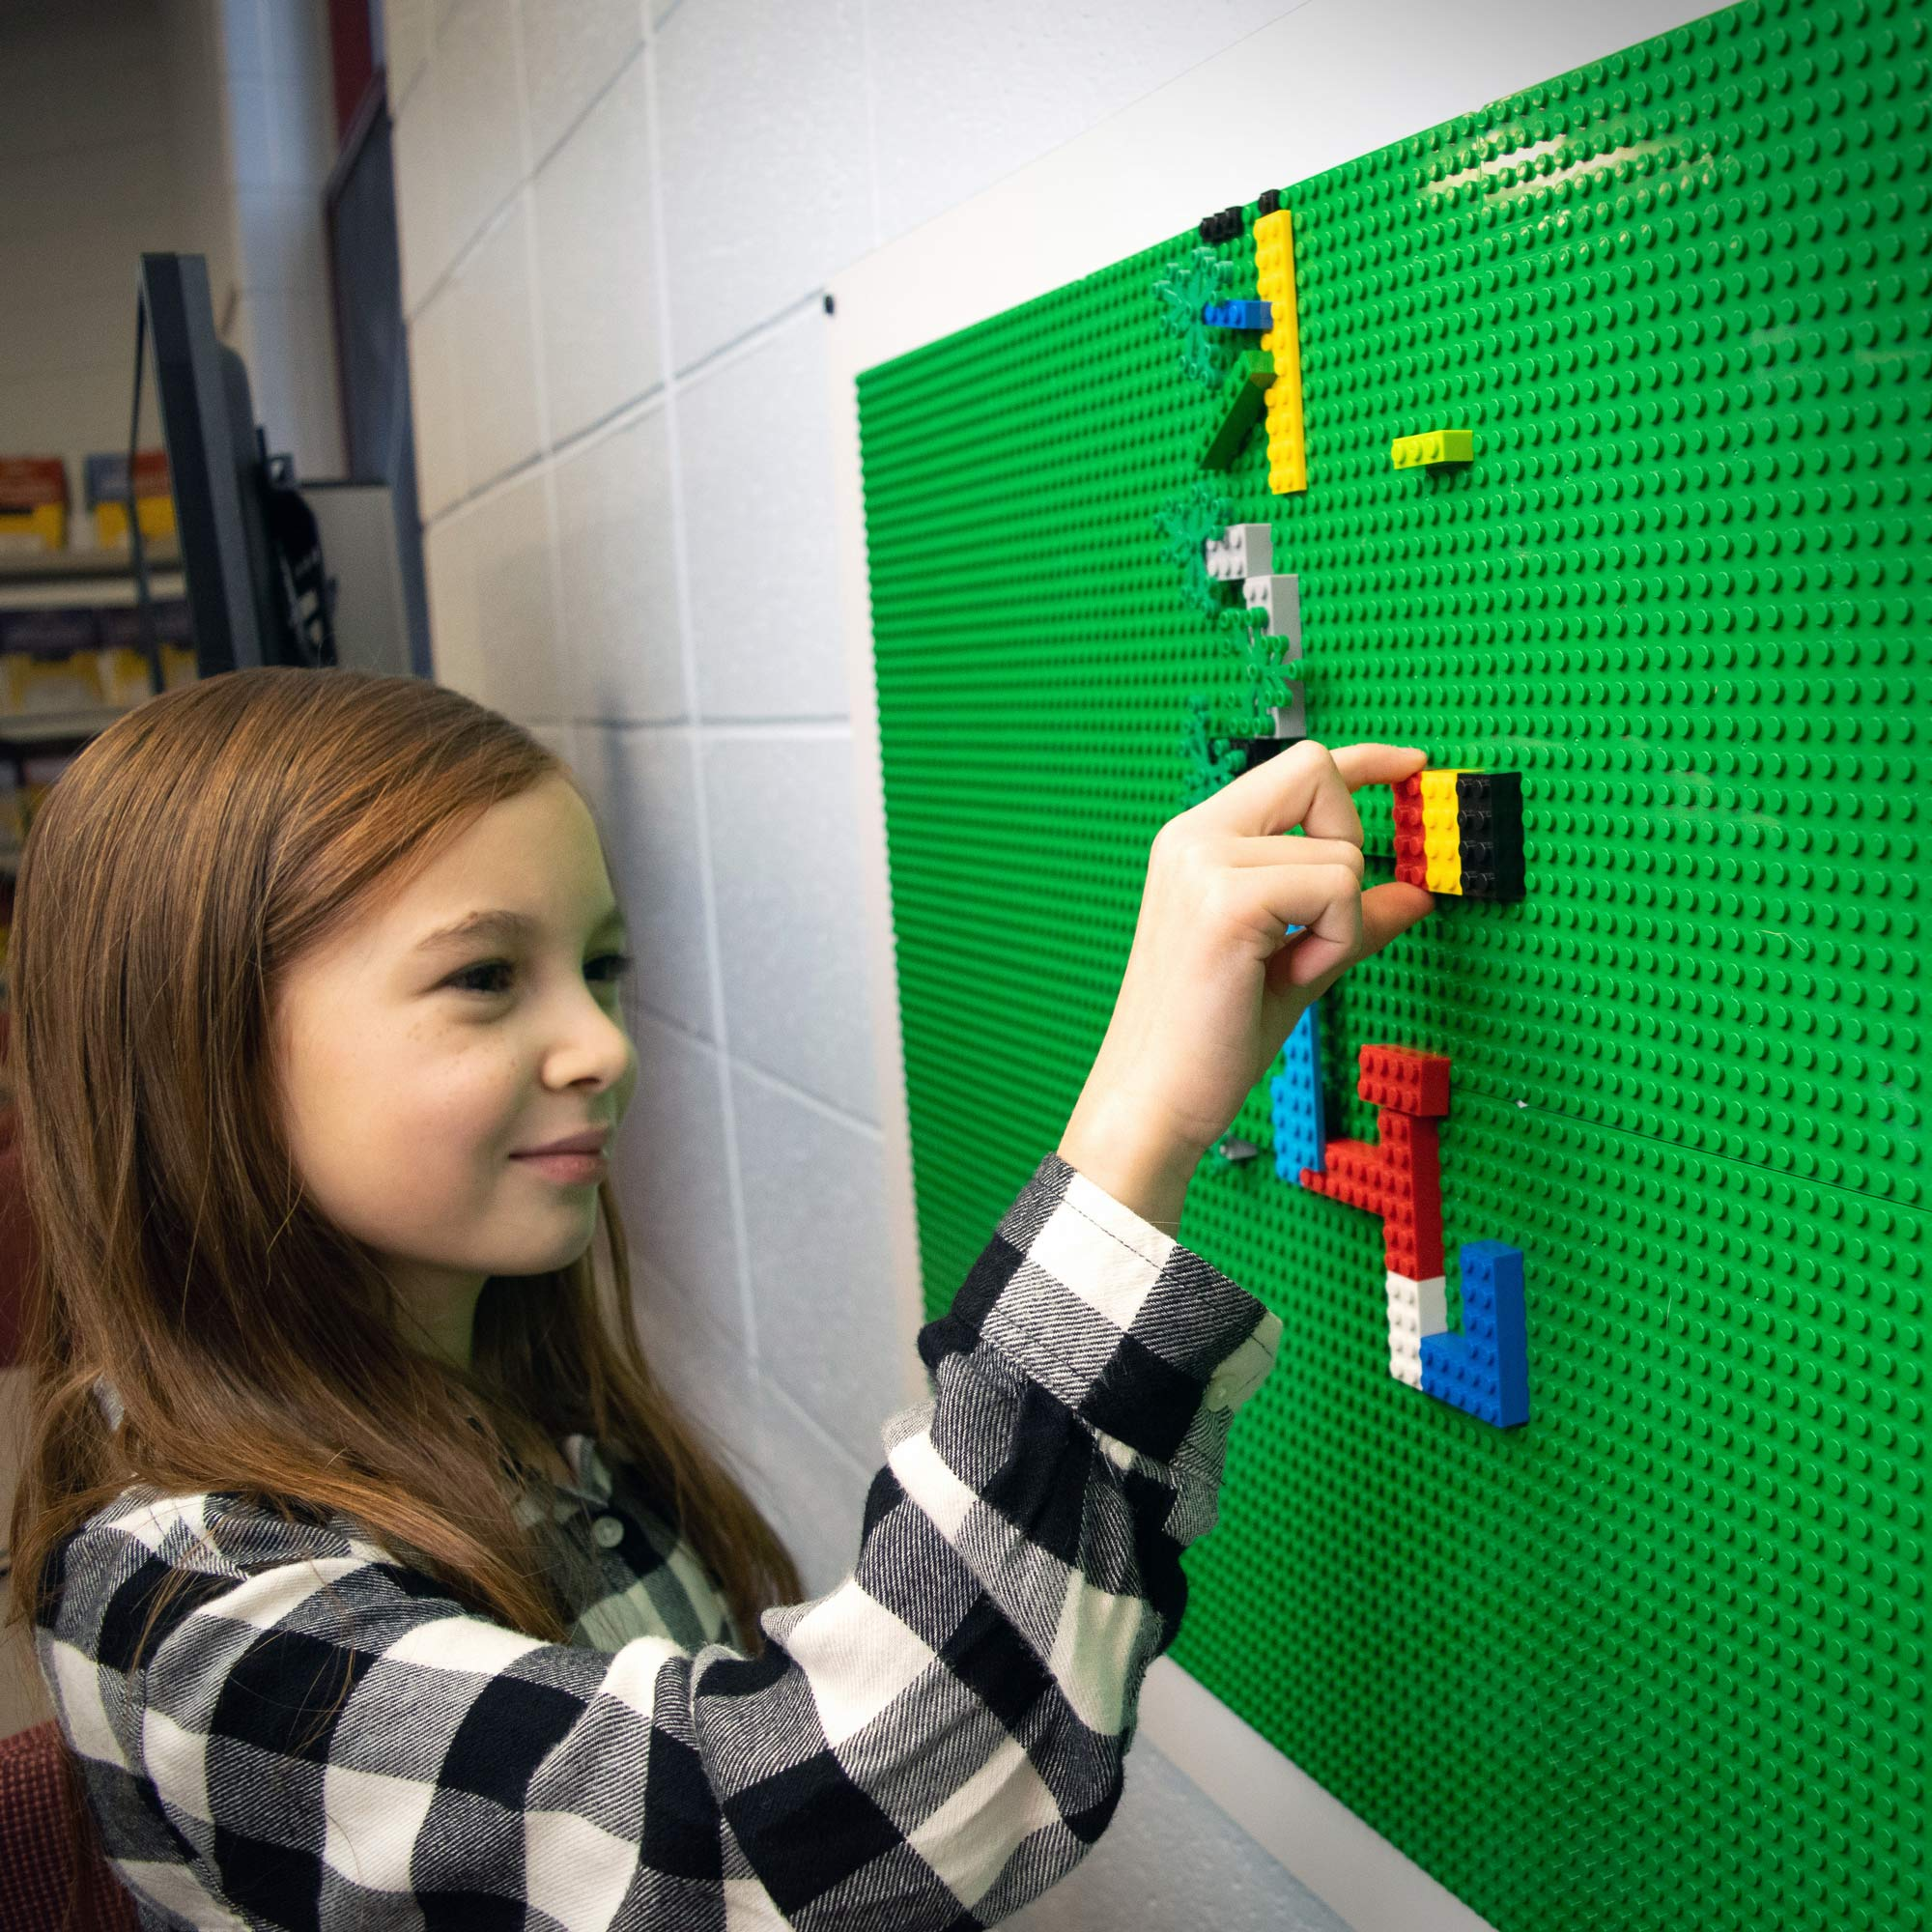 Girl playing with Lego bricks on PlayUp Wall by Creative QT